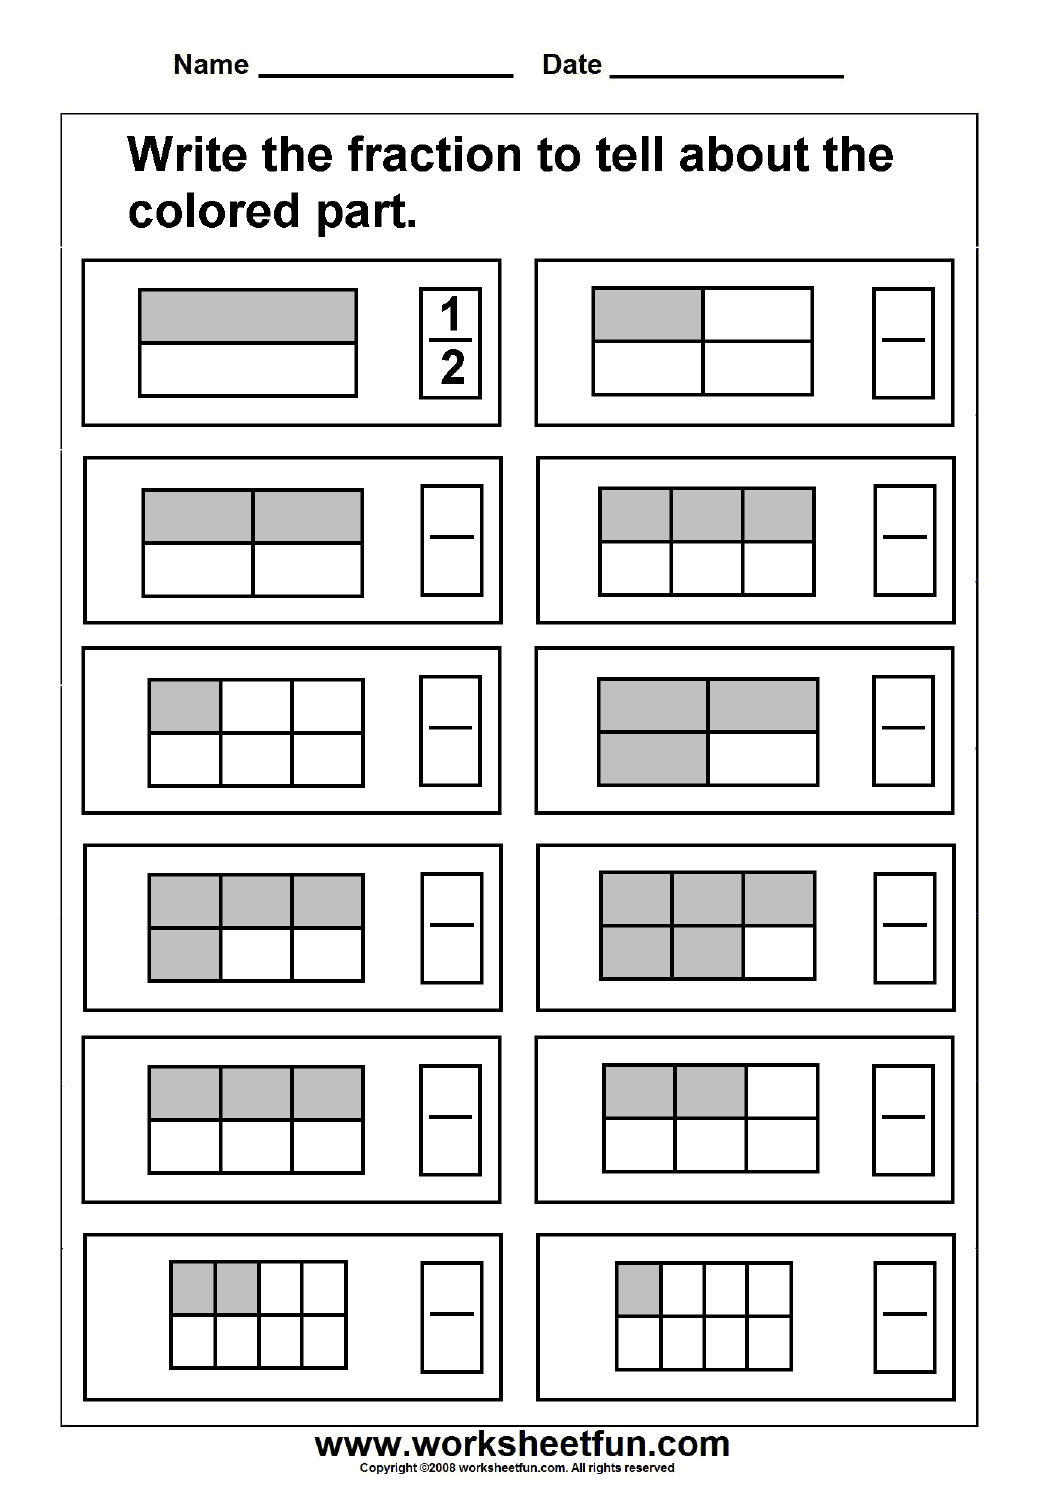 Worksheet 1st Grade Fractions fraction free printable worksheets worksheetfun model 3 worksheets